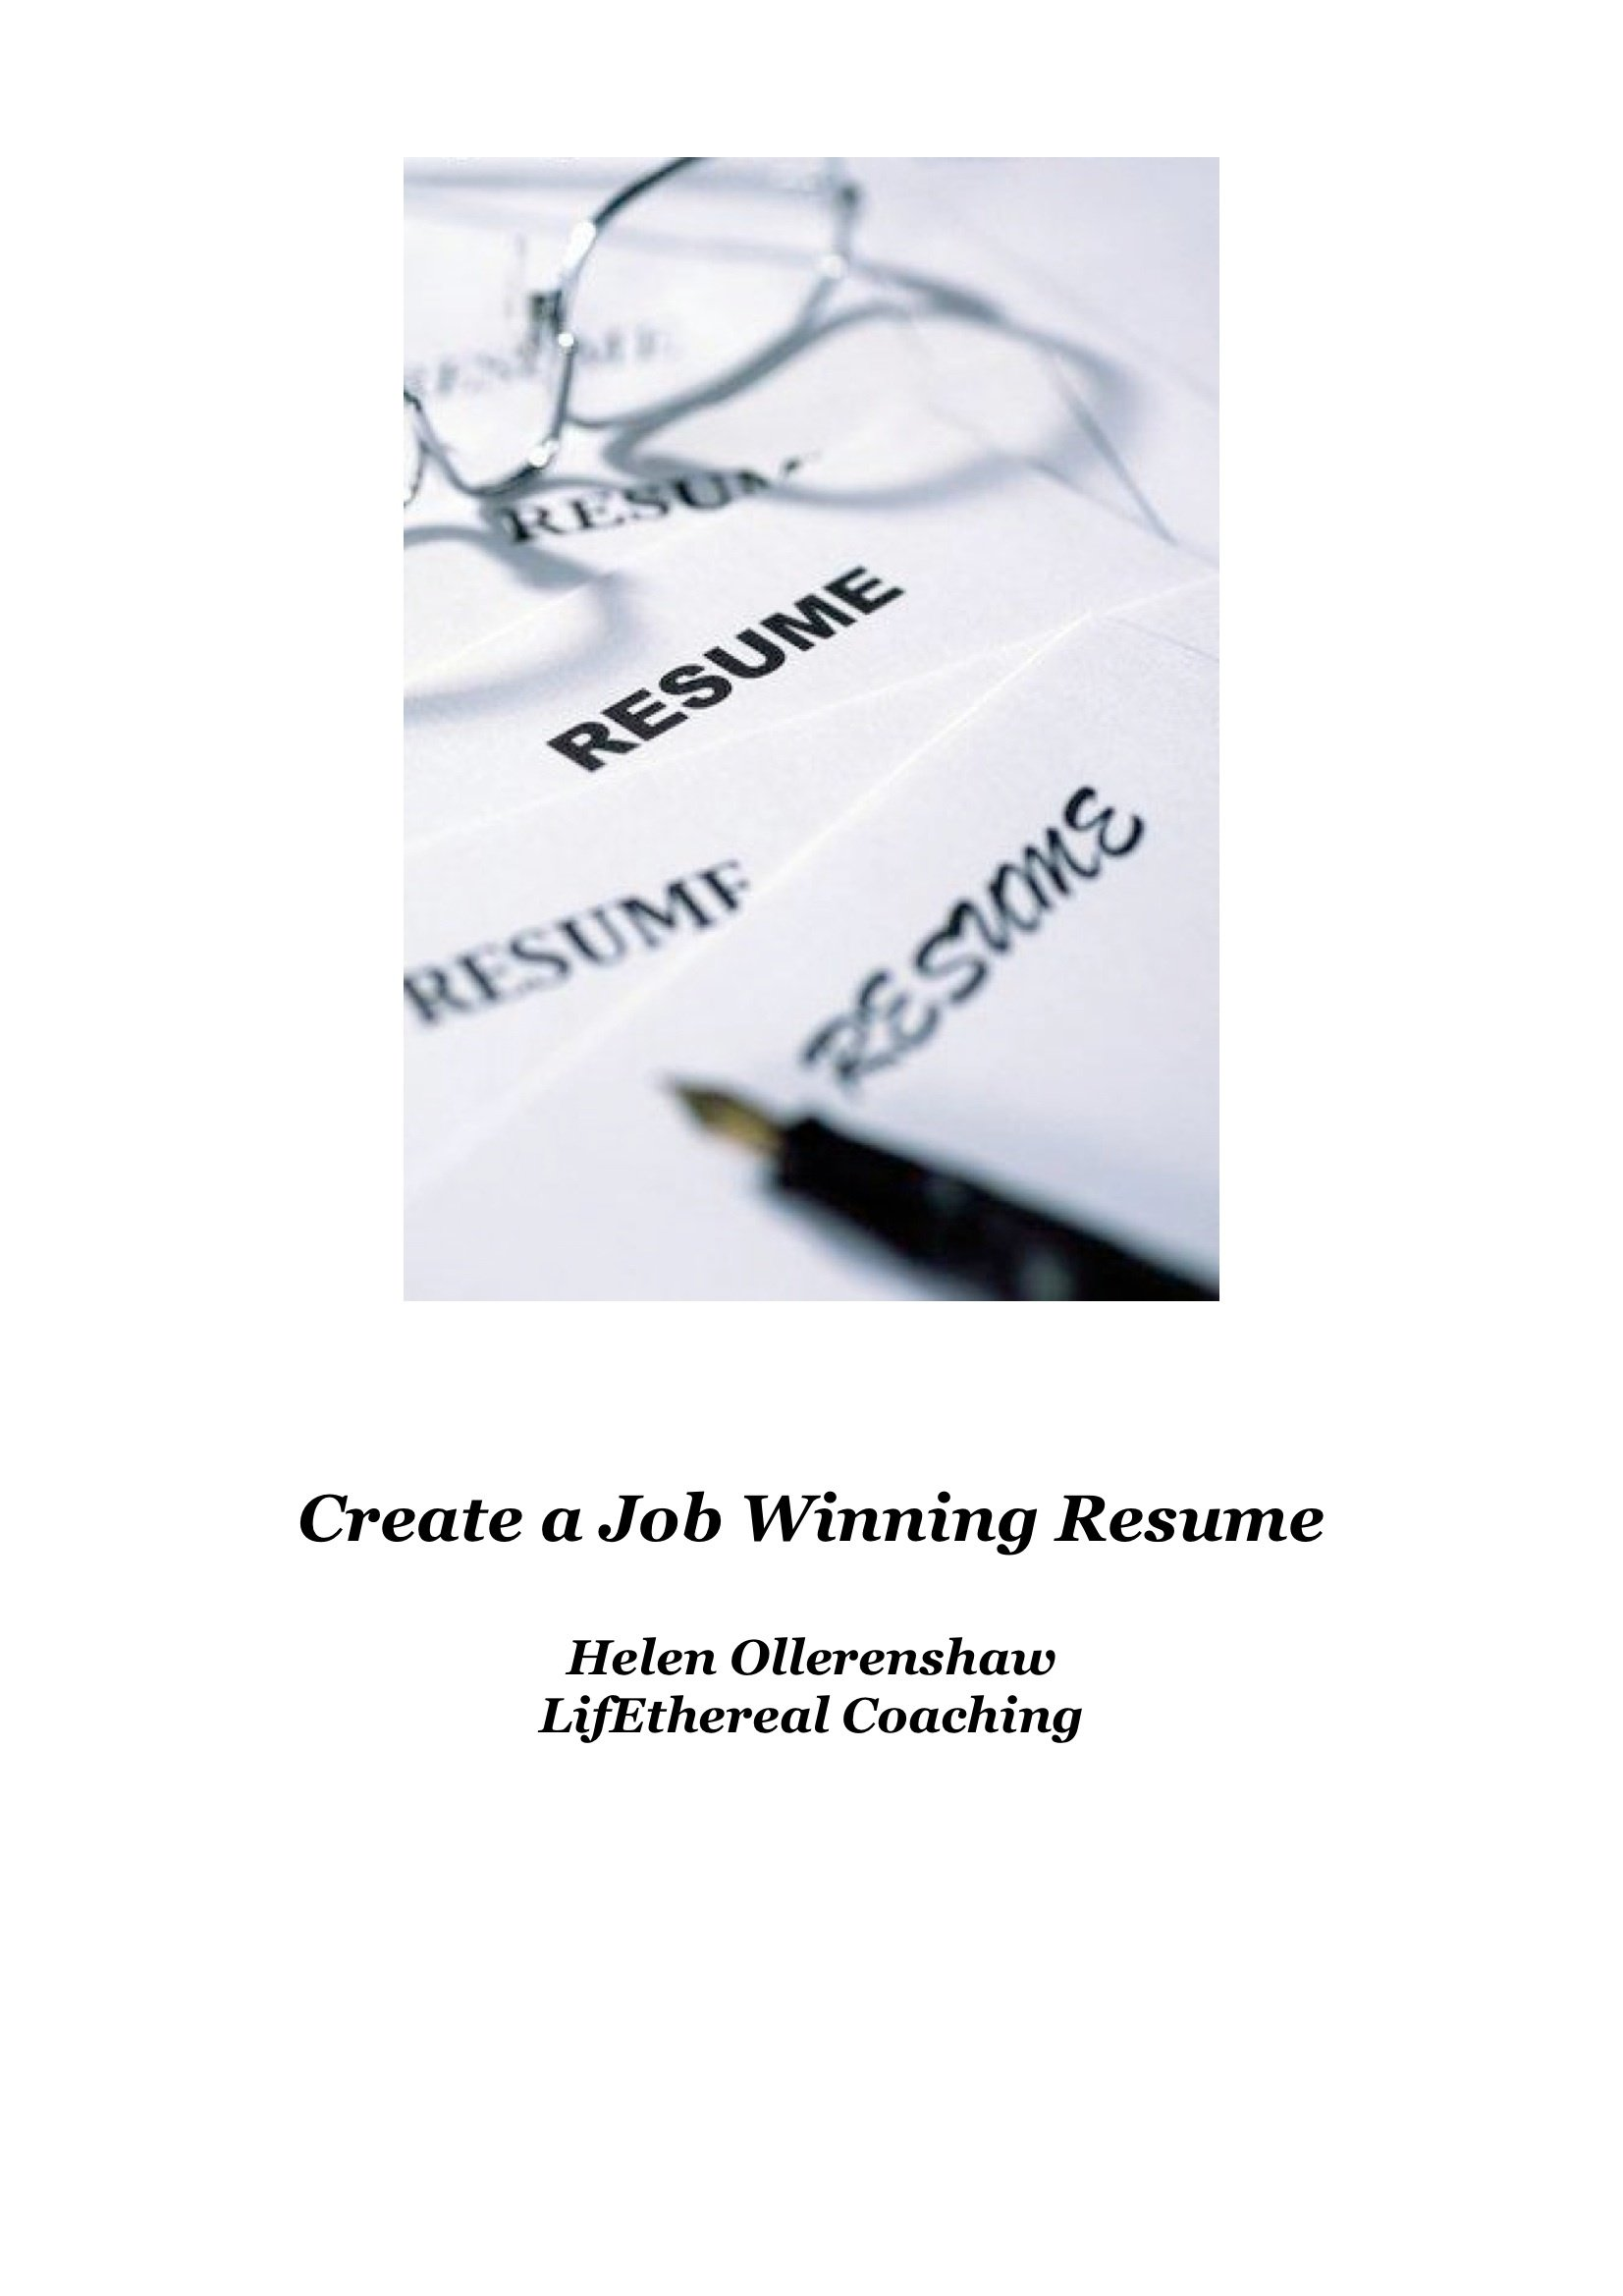 Job Winning Resume 00002